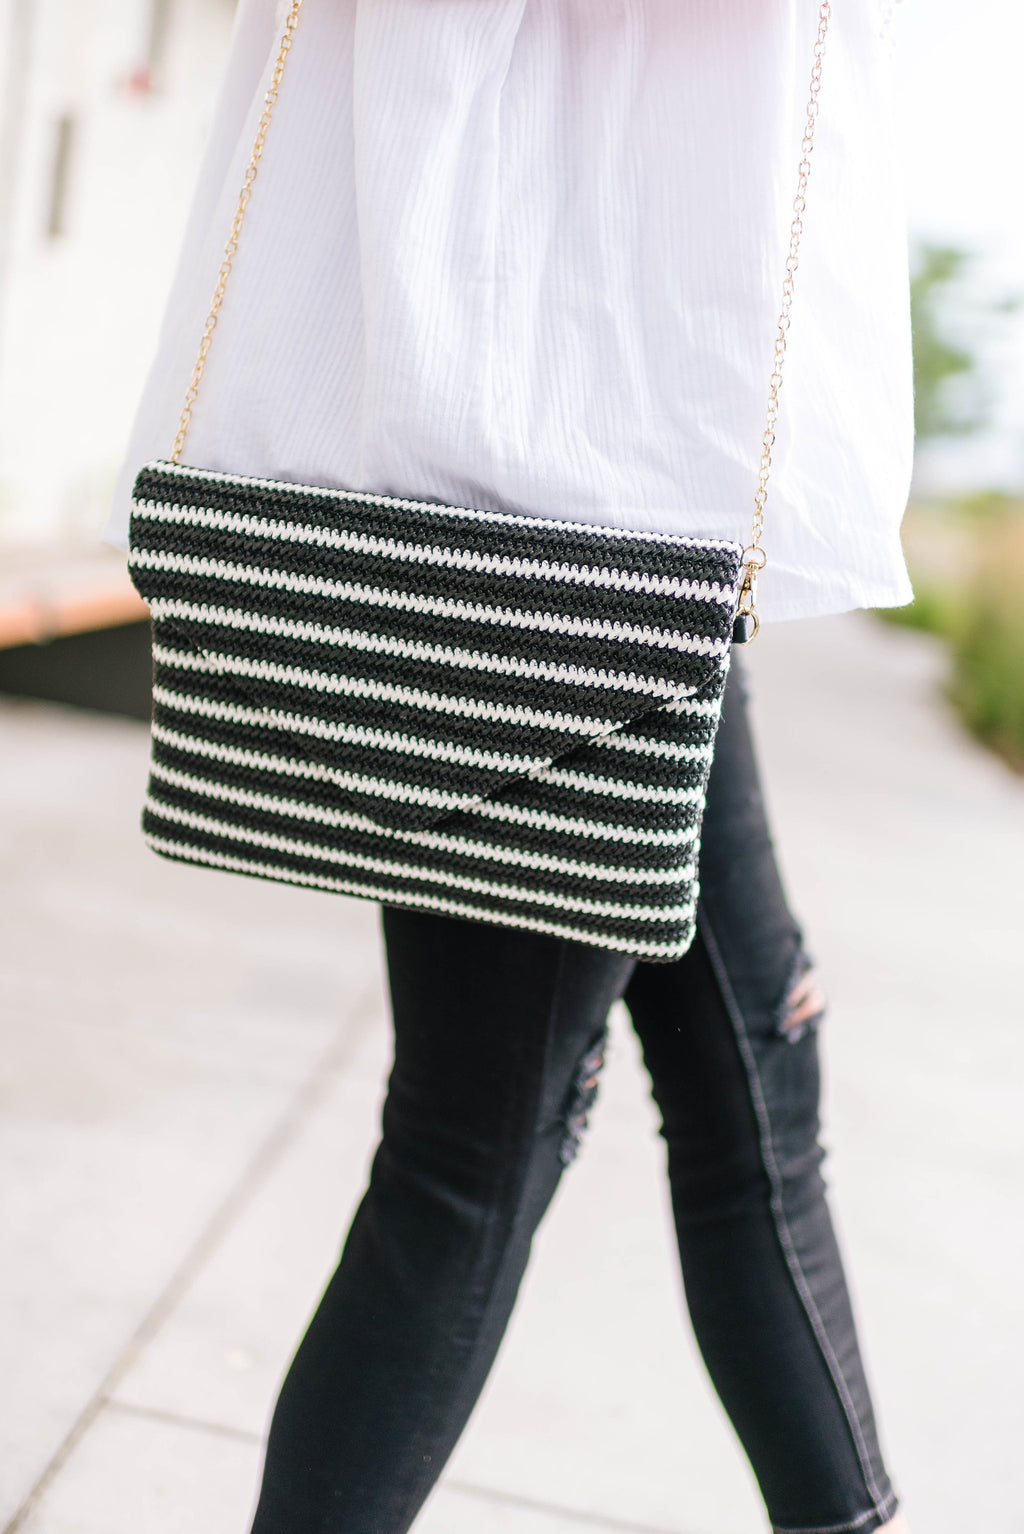 Striped Clutch + Chain